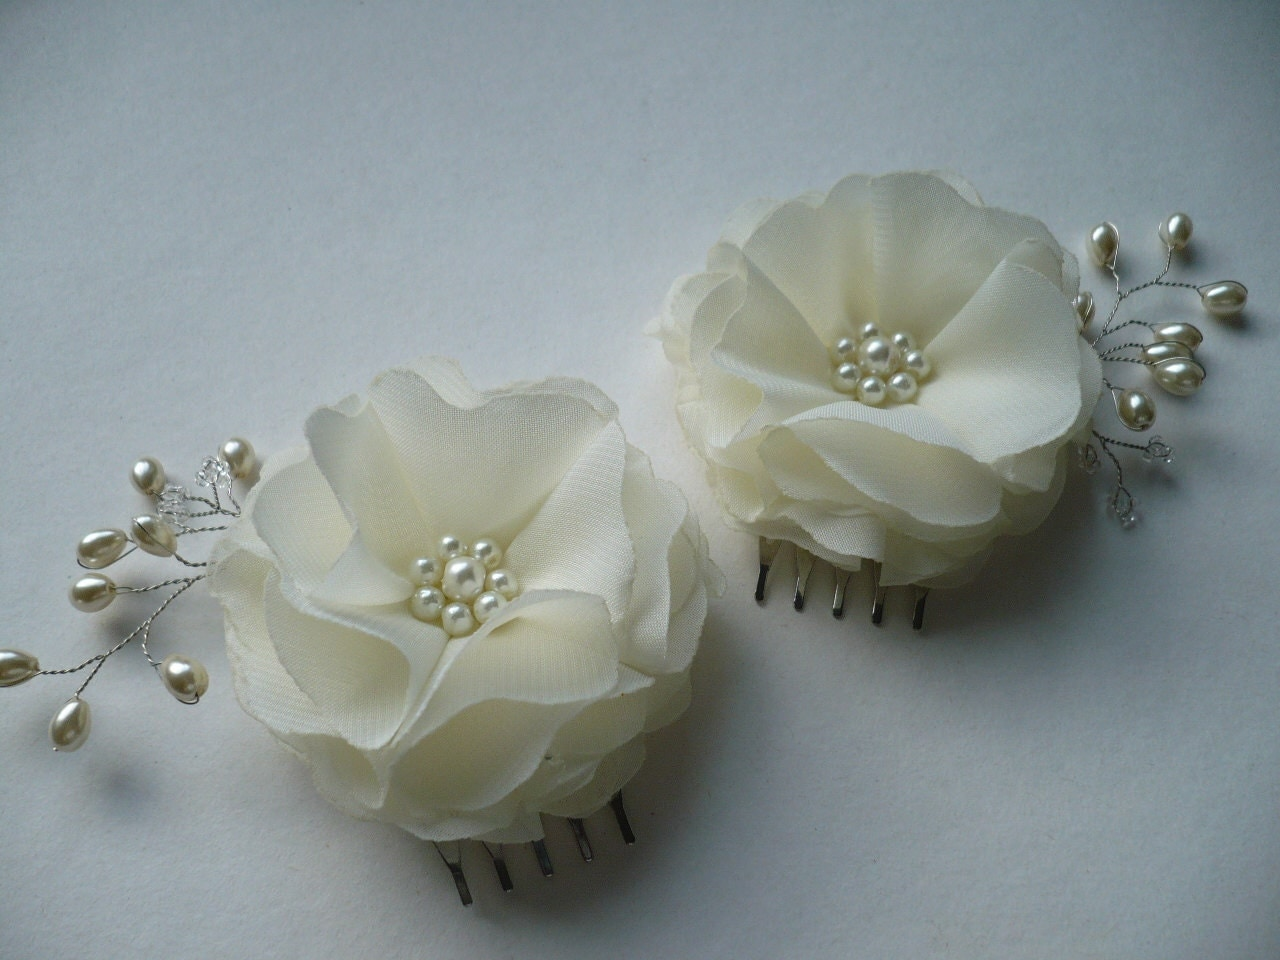 Bridal Ivory Flower Hair Accessories : Ivory hair accessories flower comb bridal accessory